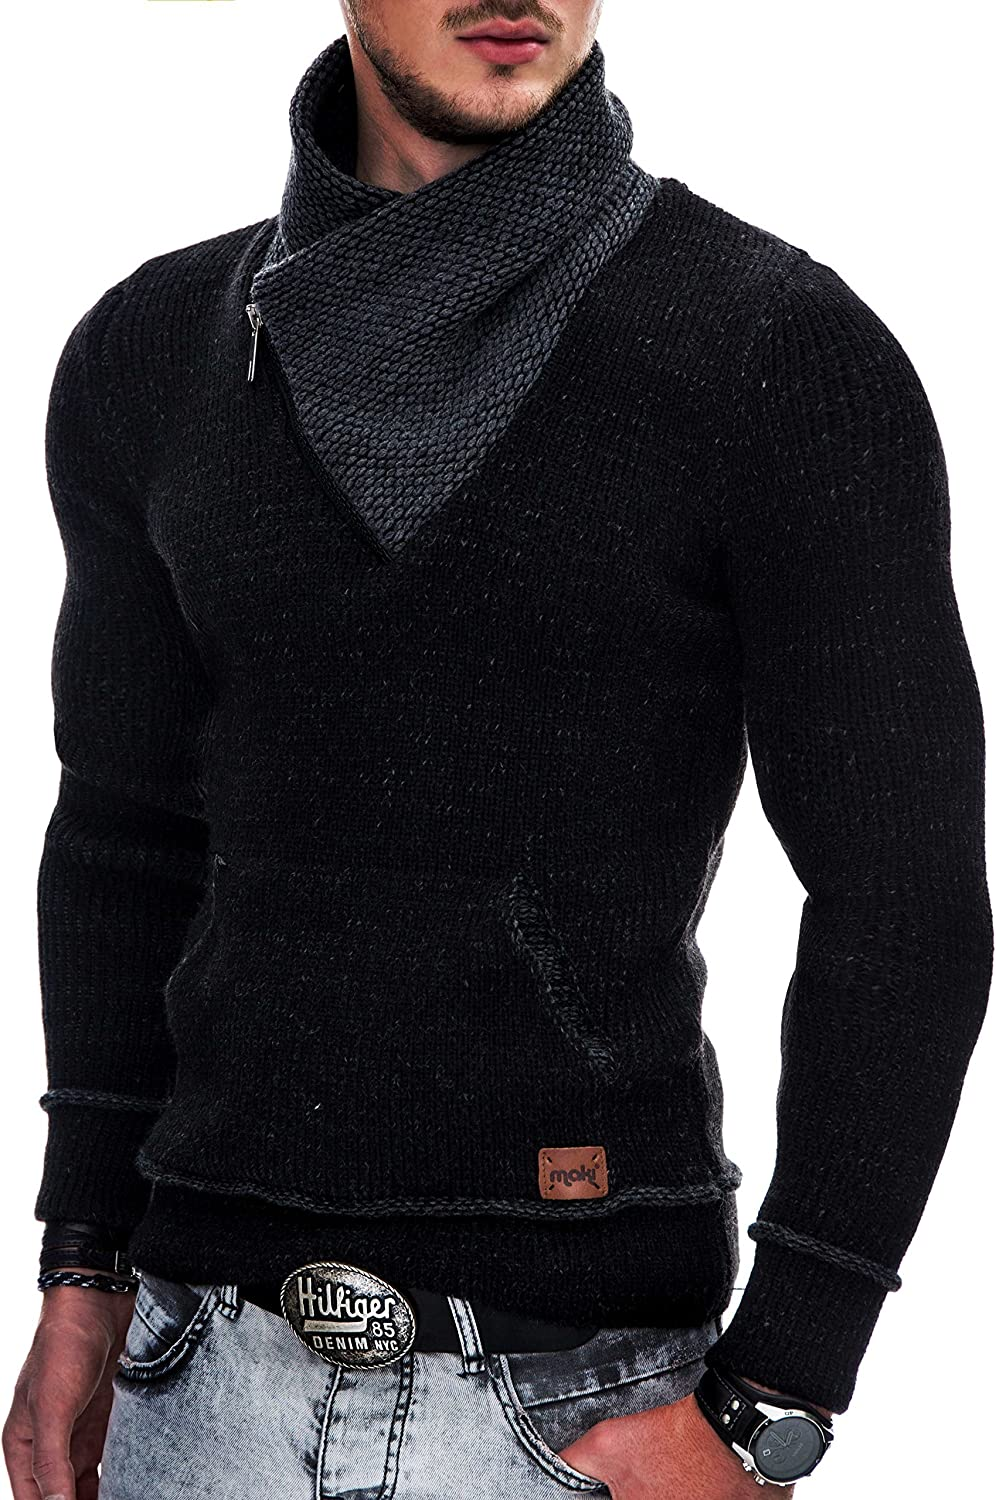 INDICODE Hombre Suéter tejido Capucha Sudadera Pullover Jerséis Knit Sweater 35-114 Black M